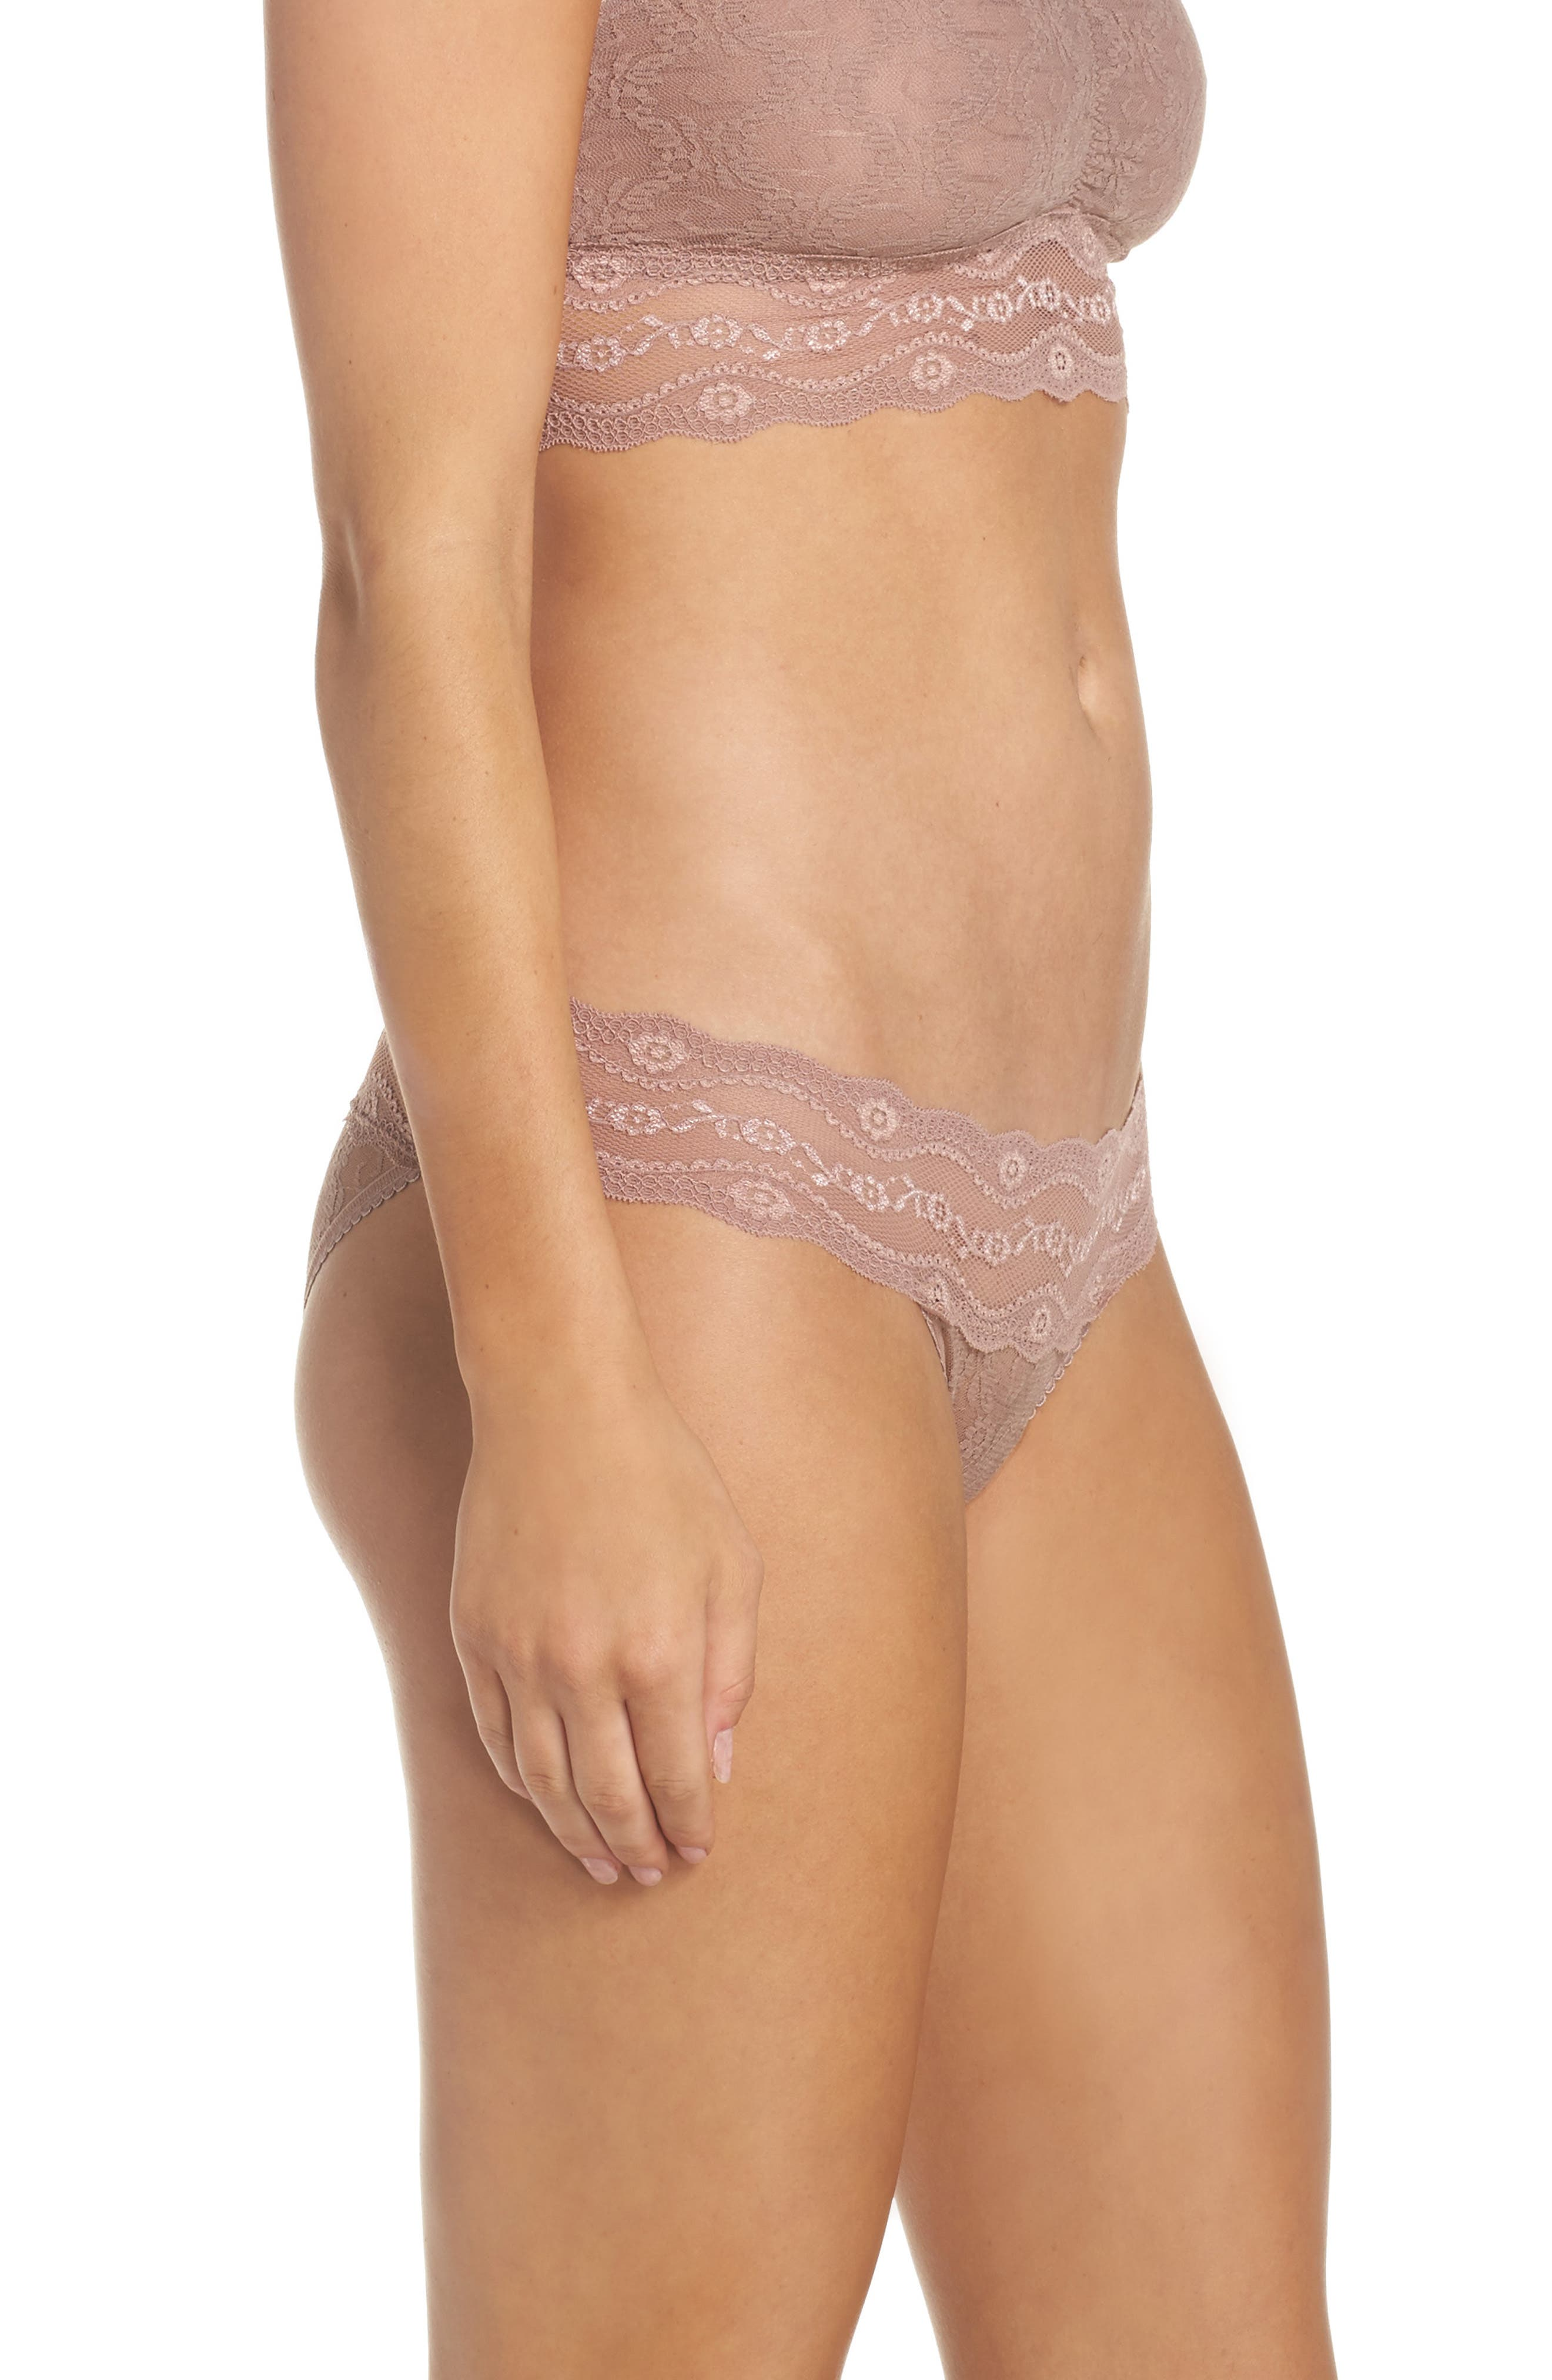 Alternate Image 3  - b.tempt'd by Wacoal 'Lace Kiss' Bikini (3 for $33)